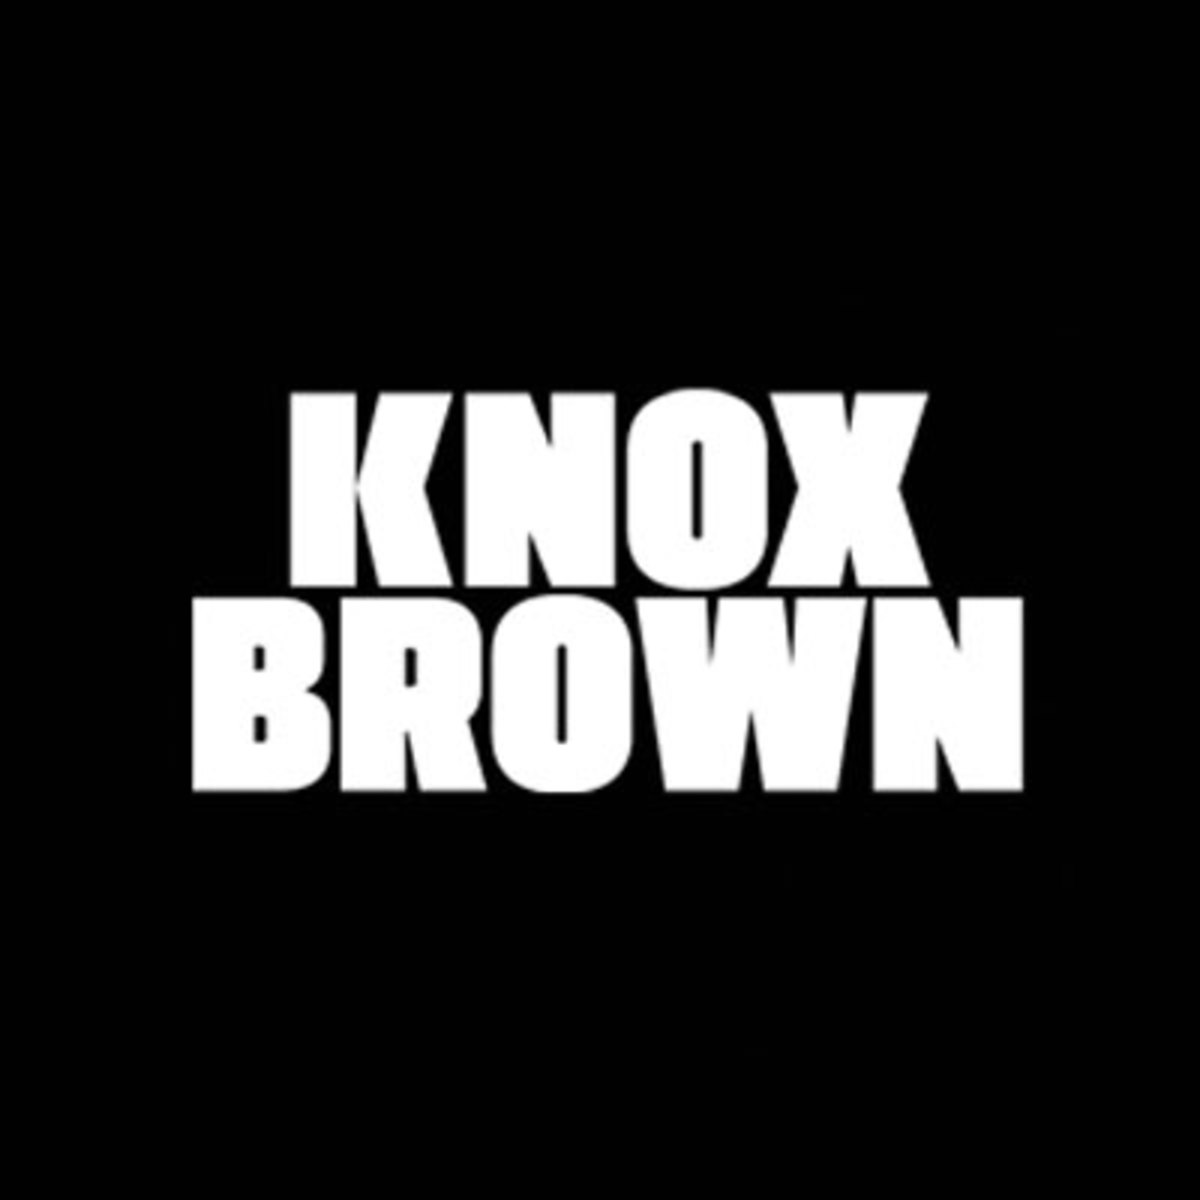 knoxbrown.jpg